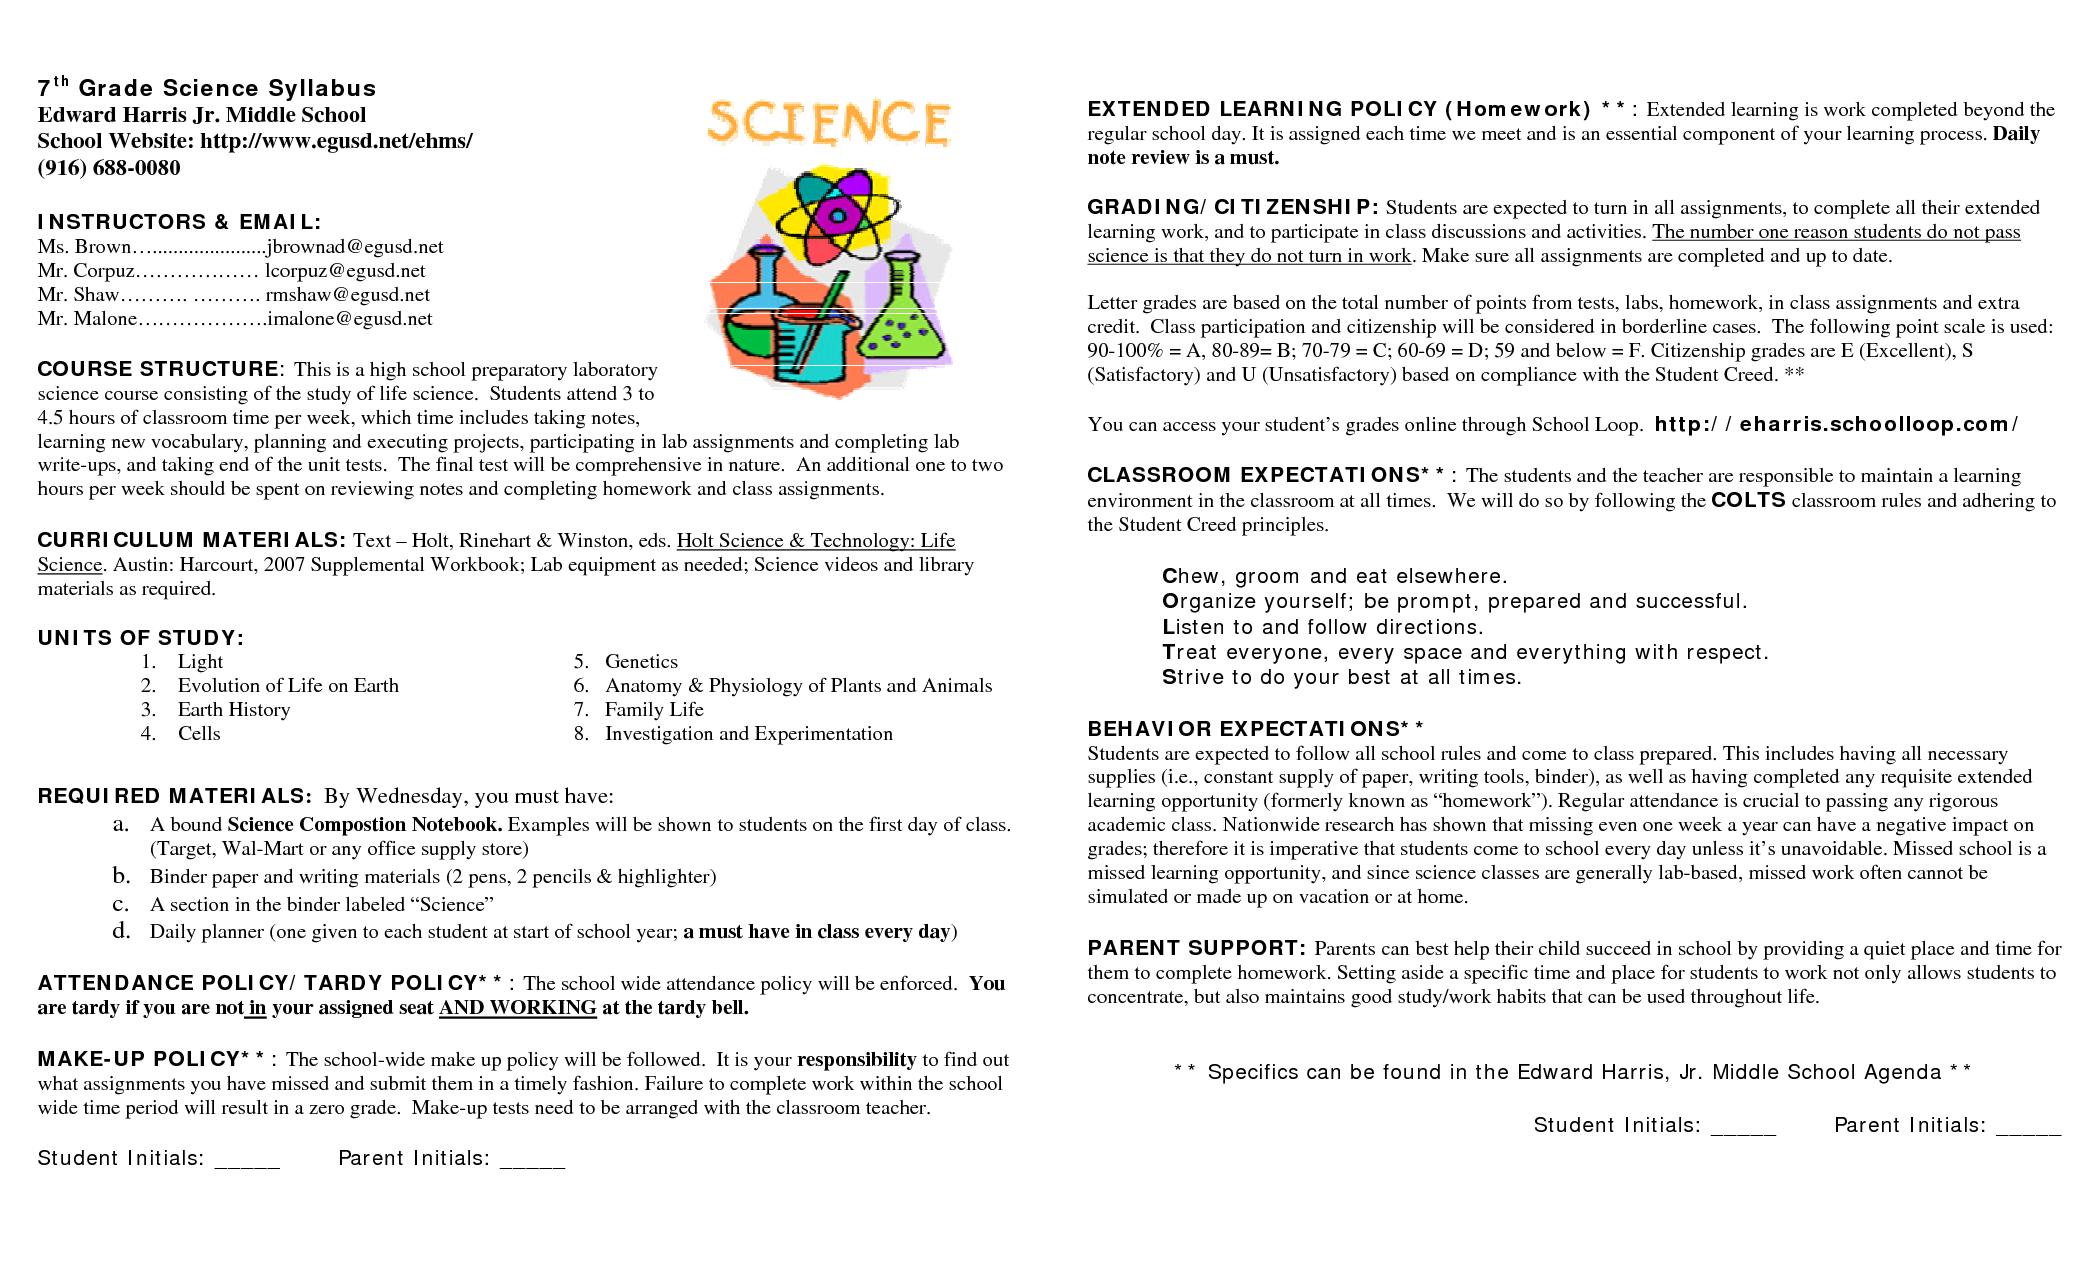 15 Awesome Syllabus Template For Middle School Images Throughout Blank Syllabus Template